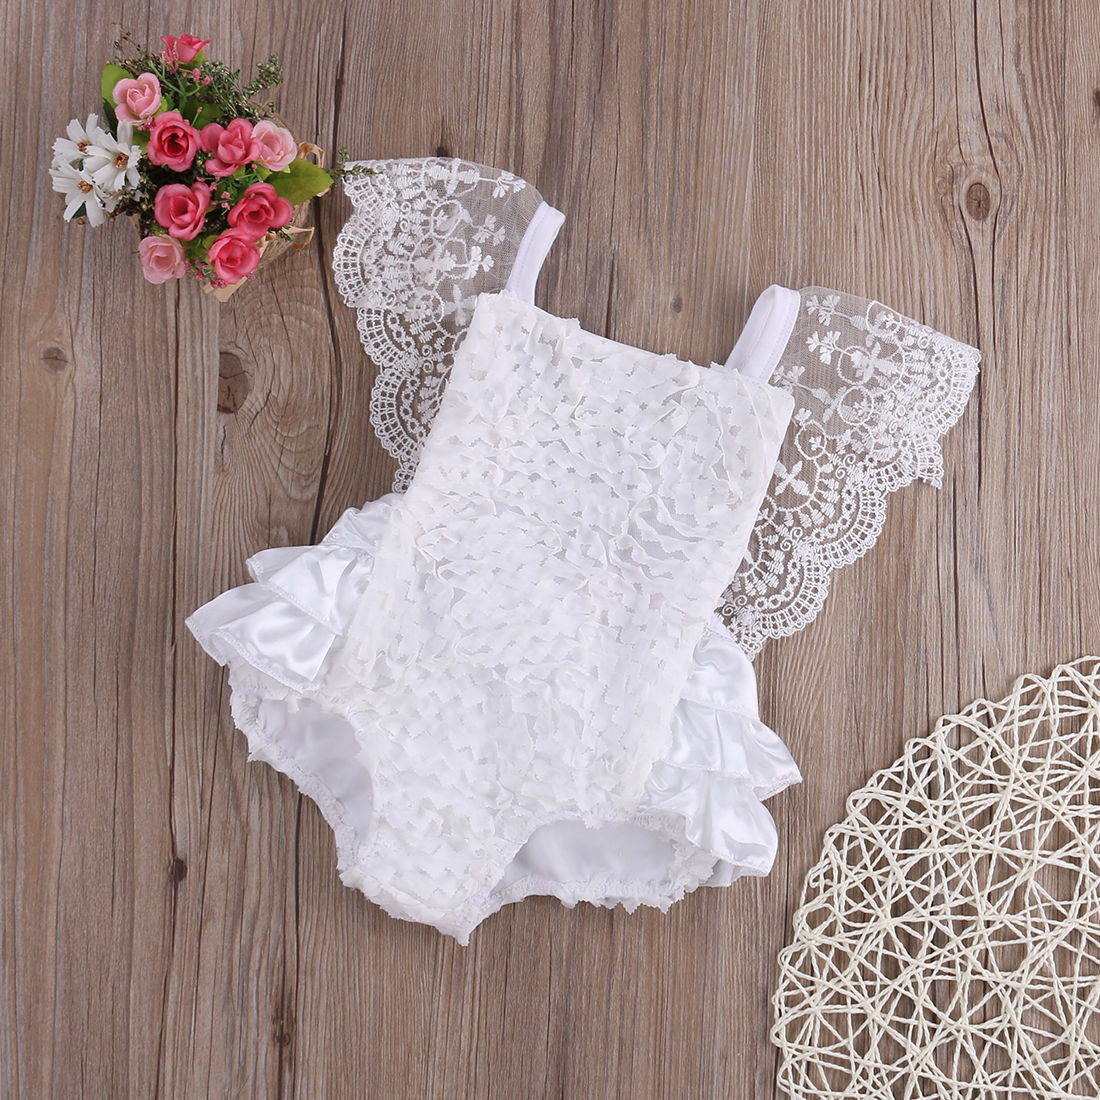 e559ff0c7 Summer Princess romper Baby girl romper baby girl clothes children ...